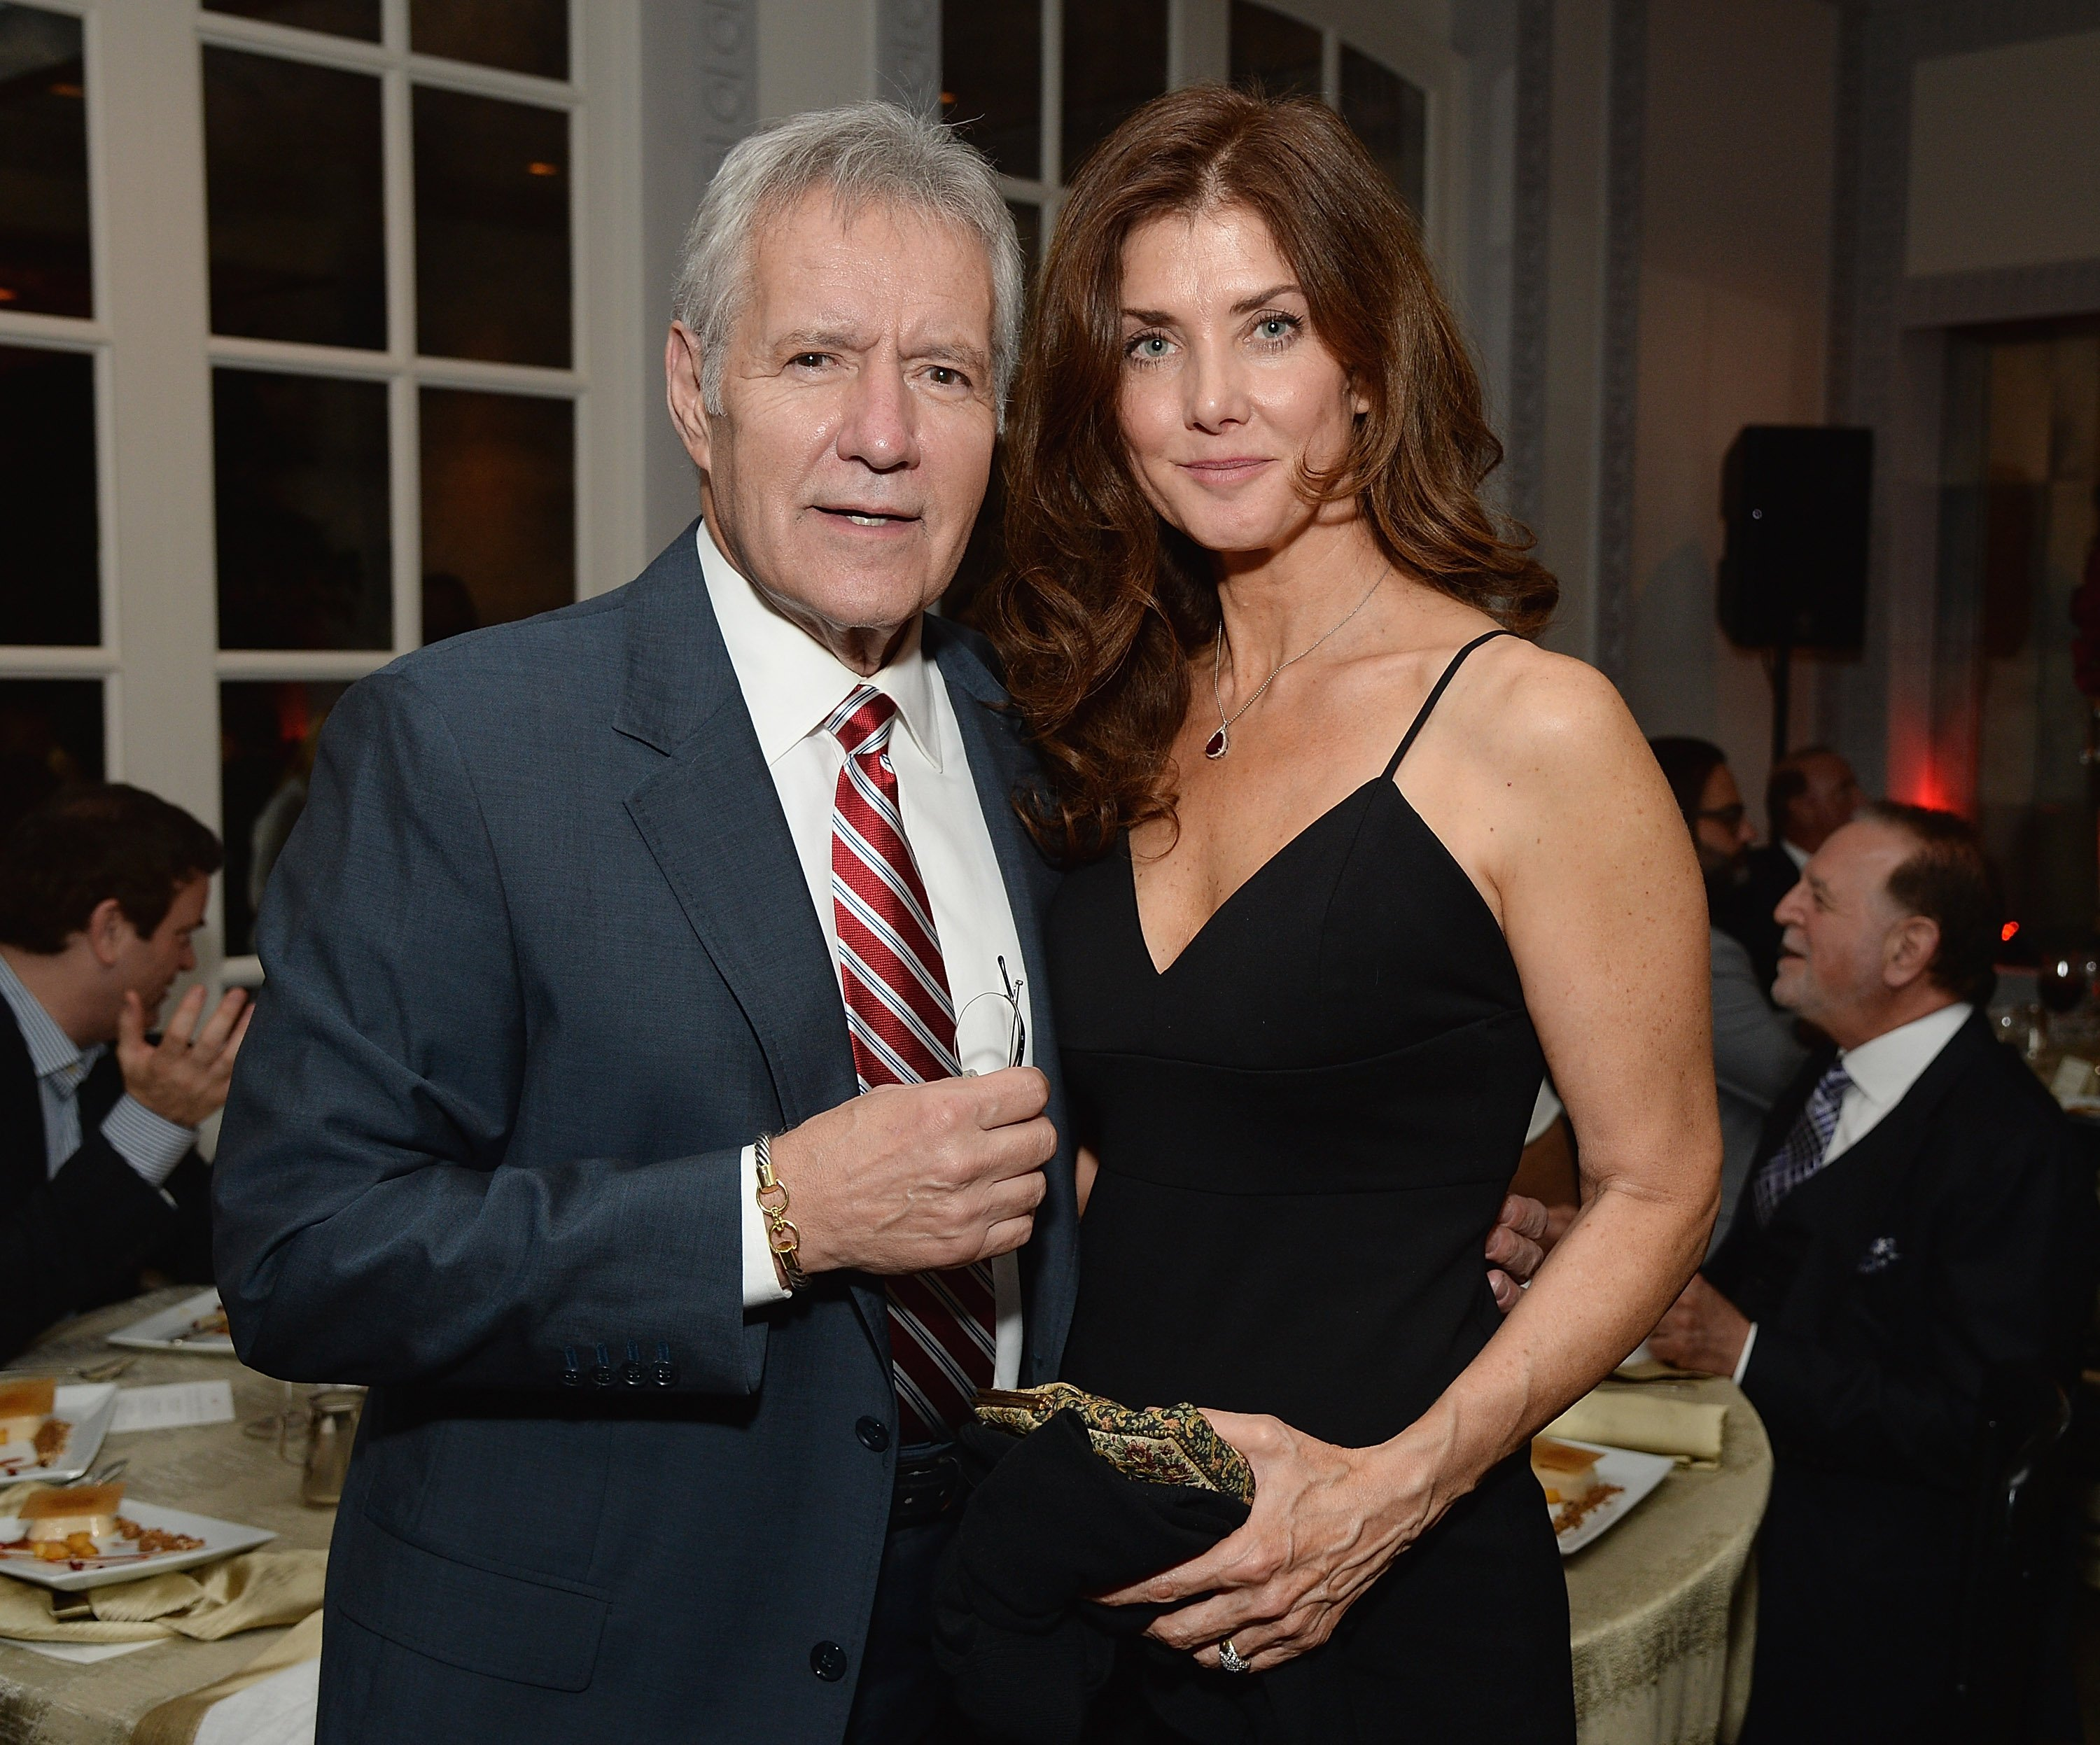 Alex Trebek and Jean Currivan Trebek attend the dinner tribute to Sophia Loren during the AFI FEST on November 12, 2014 in Los Angeles, California. | Source: Getty Images.